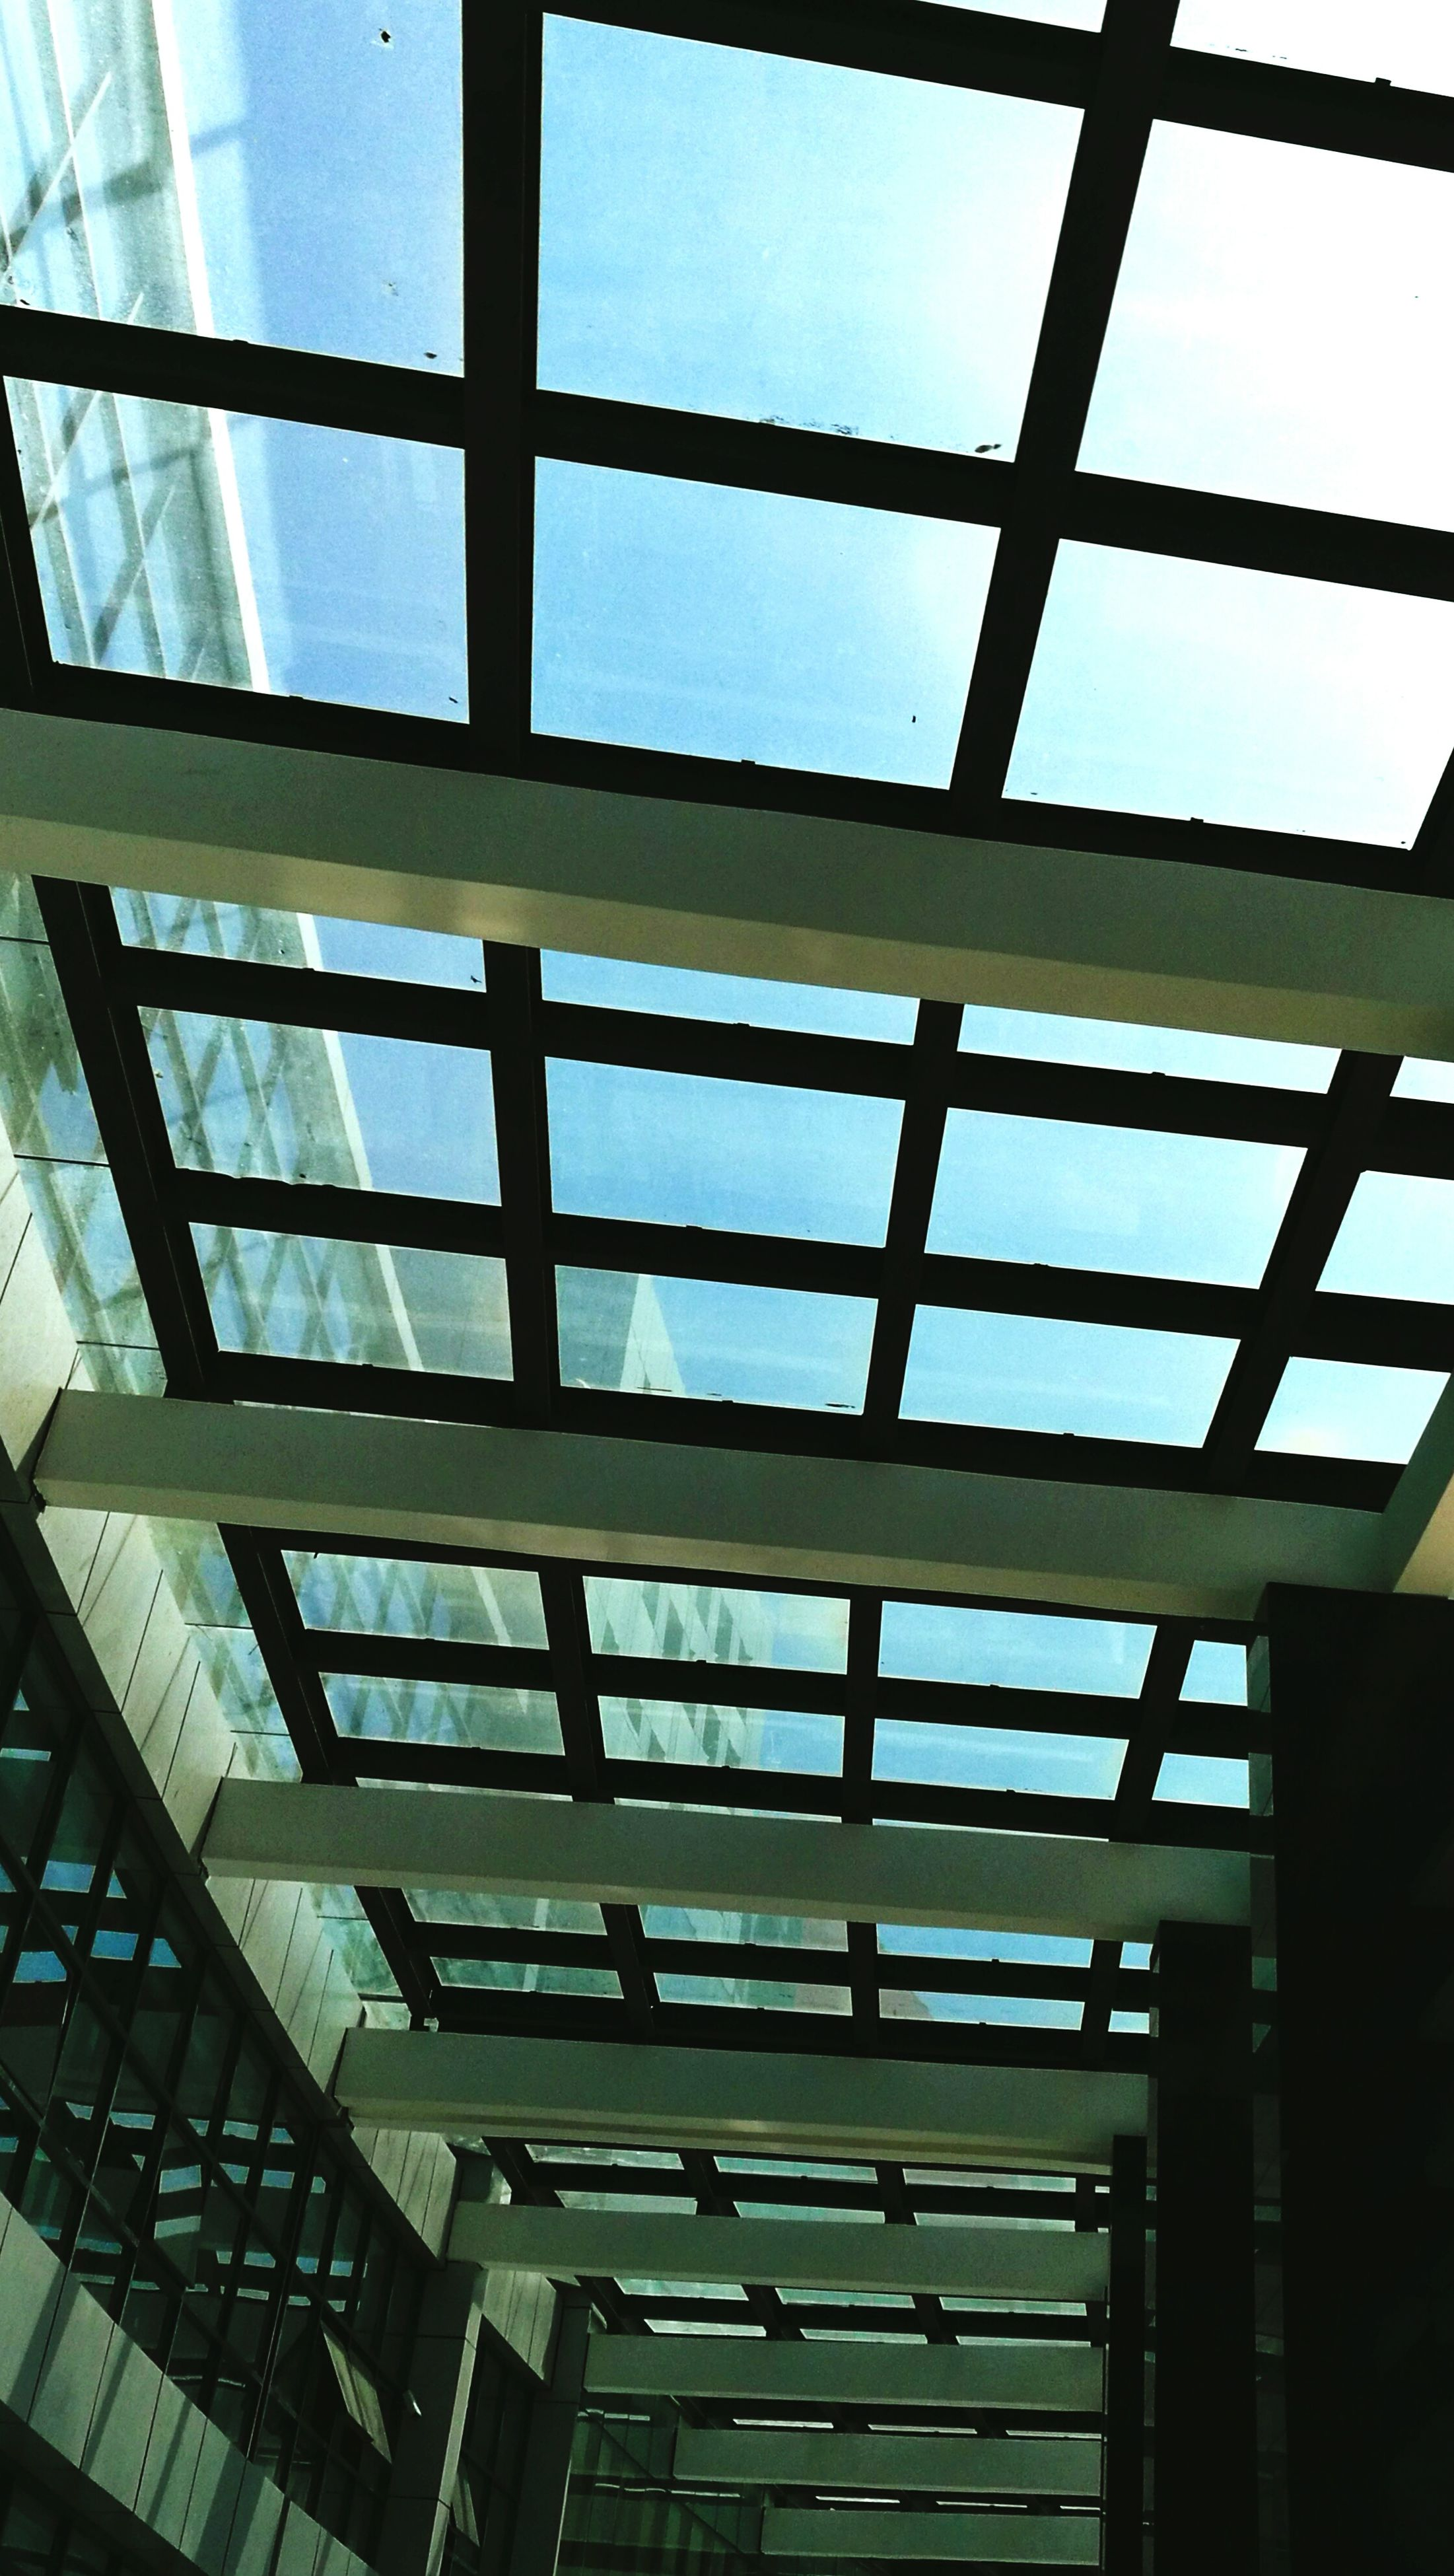 architecture, built structure, glass - material, low angle view, window, building exterior, modern, transparent, indoors, building, sky, glass, reflection, city, office building, day, pattern, no people, architectural feature, ceiling